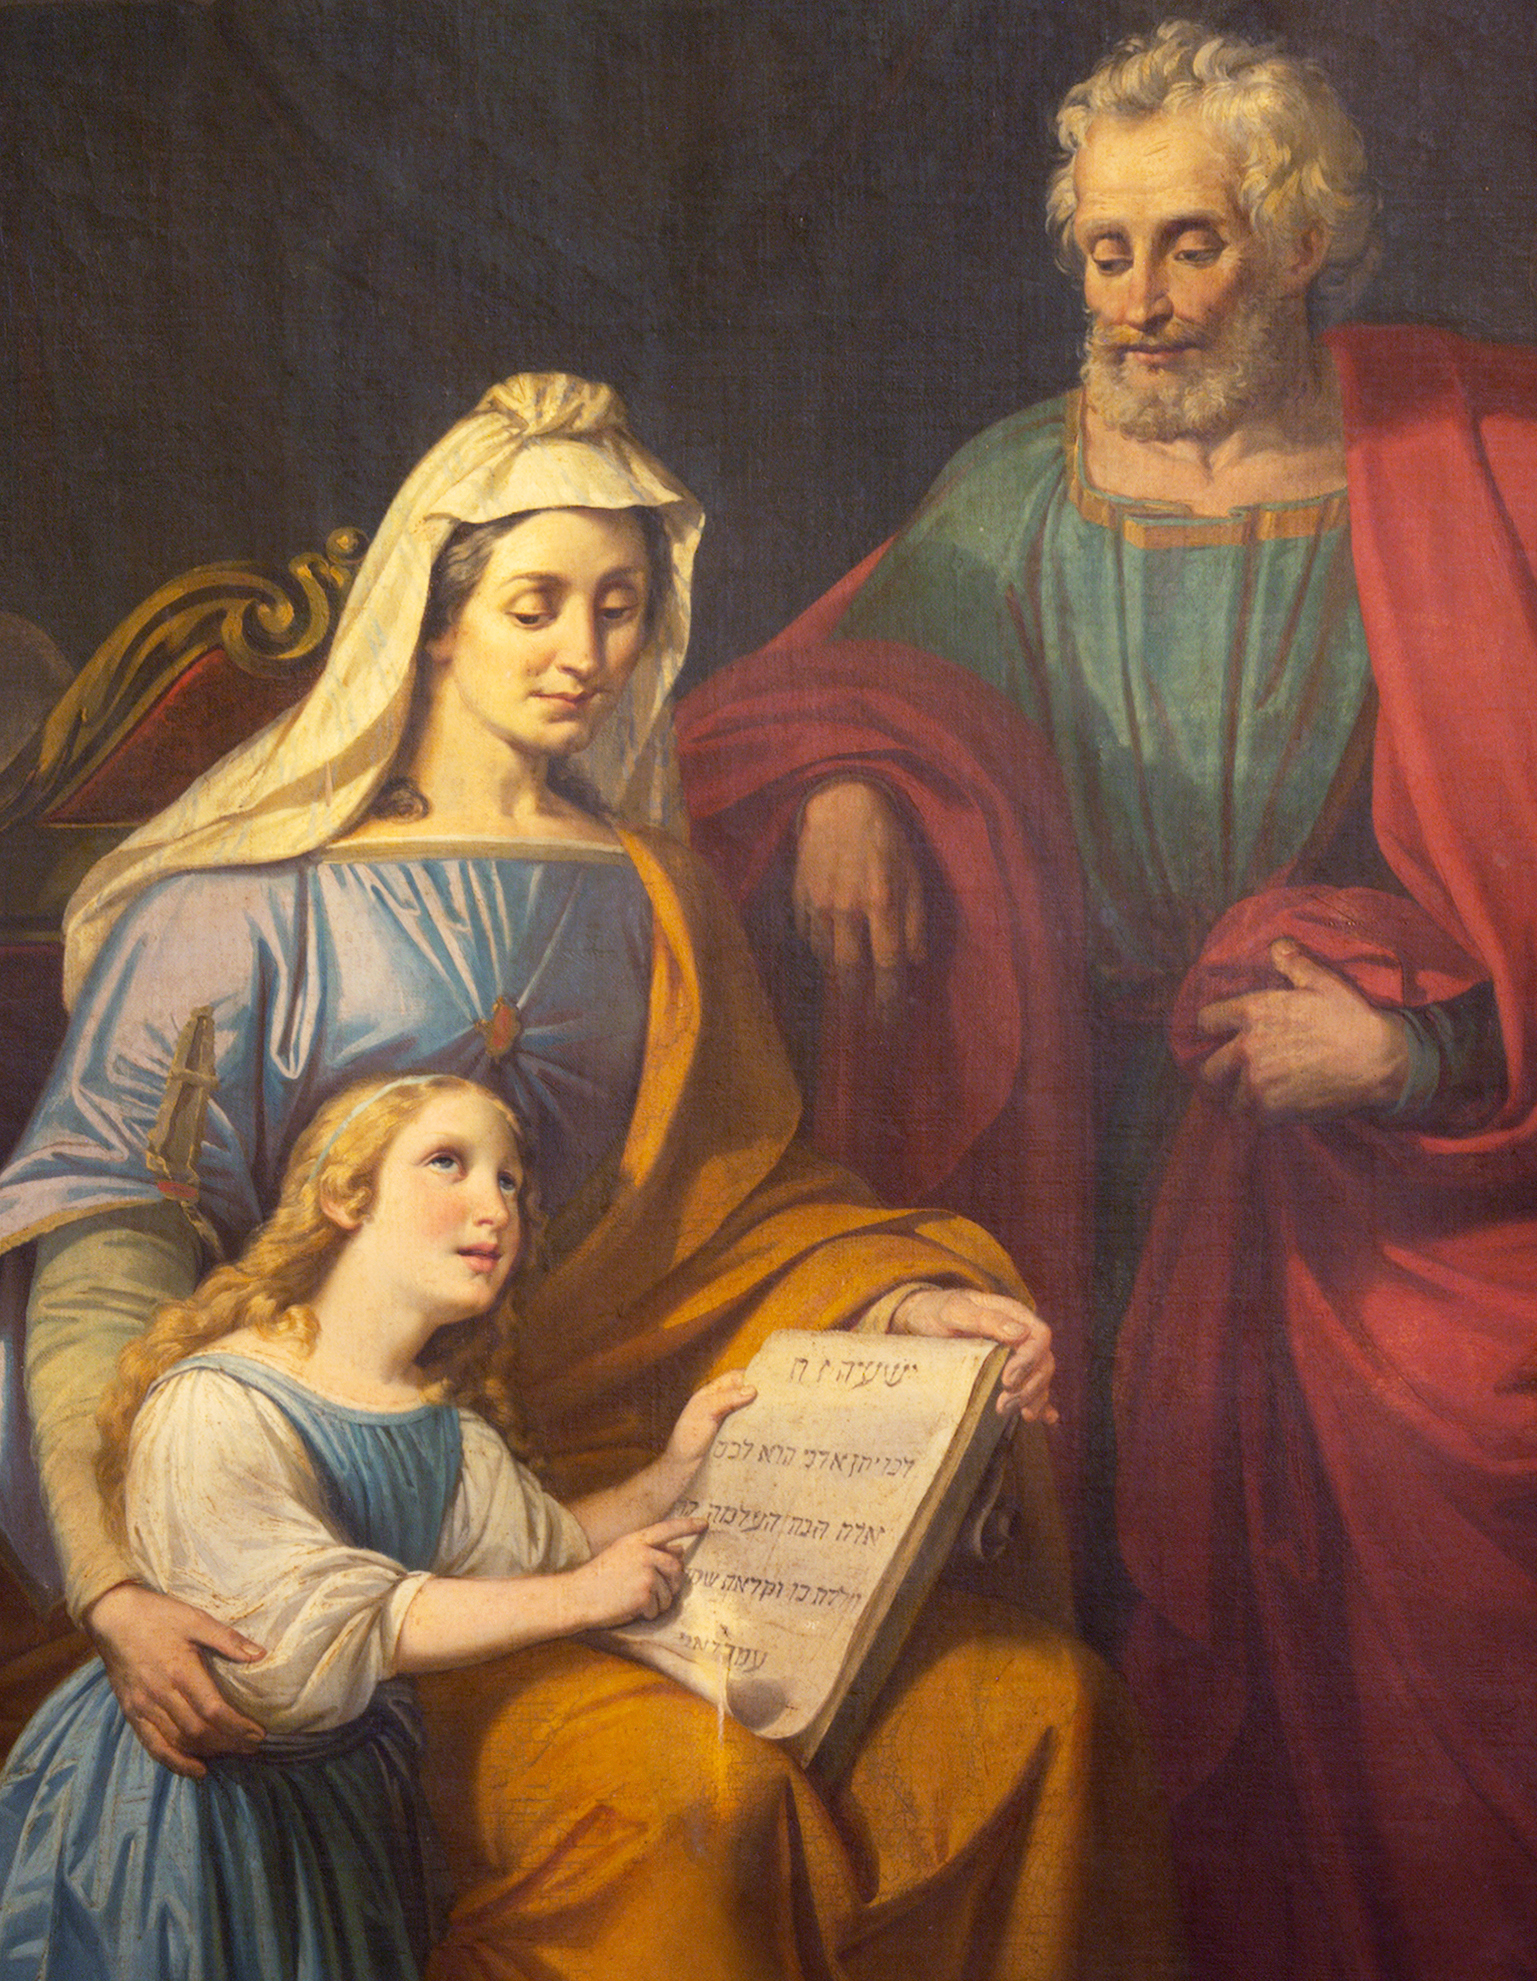 10 simple ways to celebrate the feast day of Saints Joachim and Anne